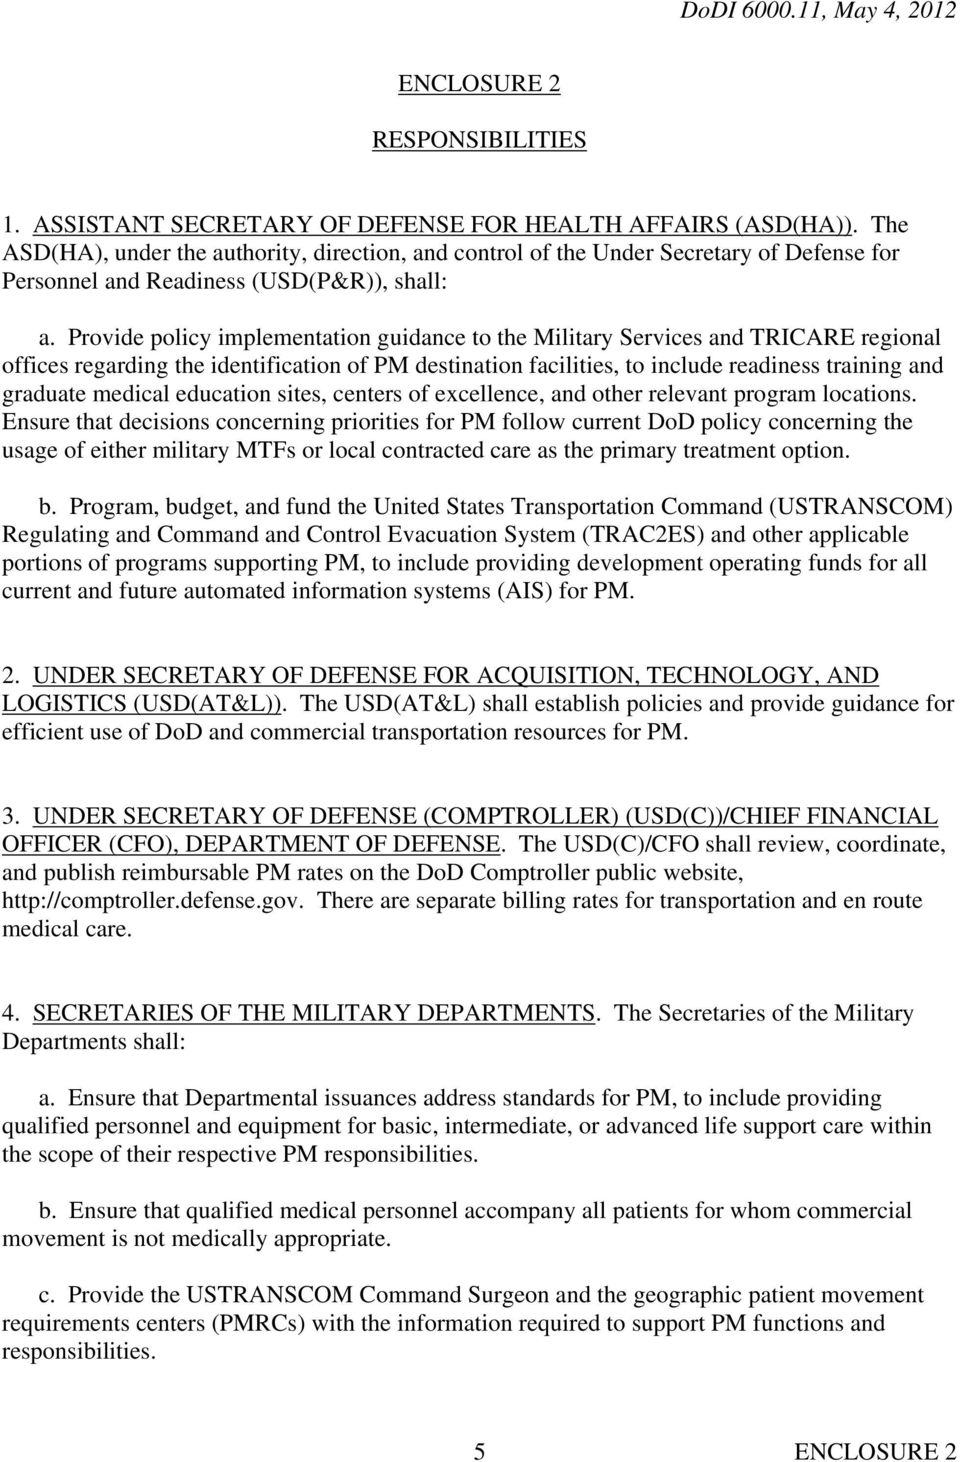 Provide policy implementation guidance to the Military Services and TRICARE regional offices regarding the identification of PM destination facilities, to include readiness training and graduate